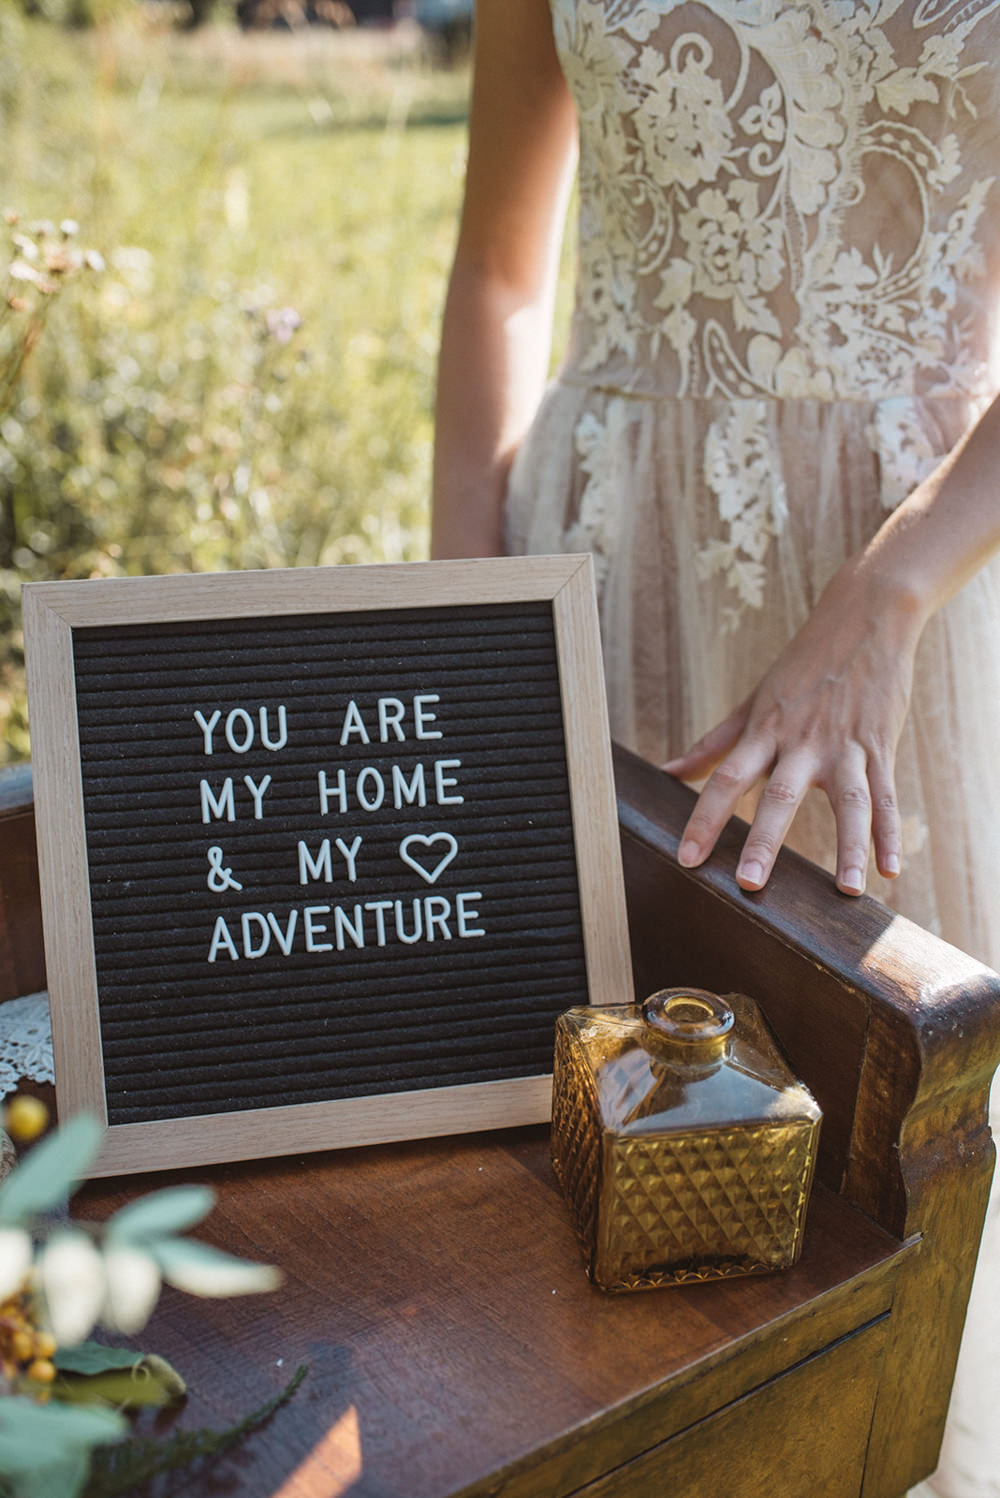 Felt Board Sign Signage French Alps Folk Boho Mountain Wedding Ideas Katja & Simon Photography